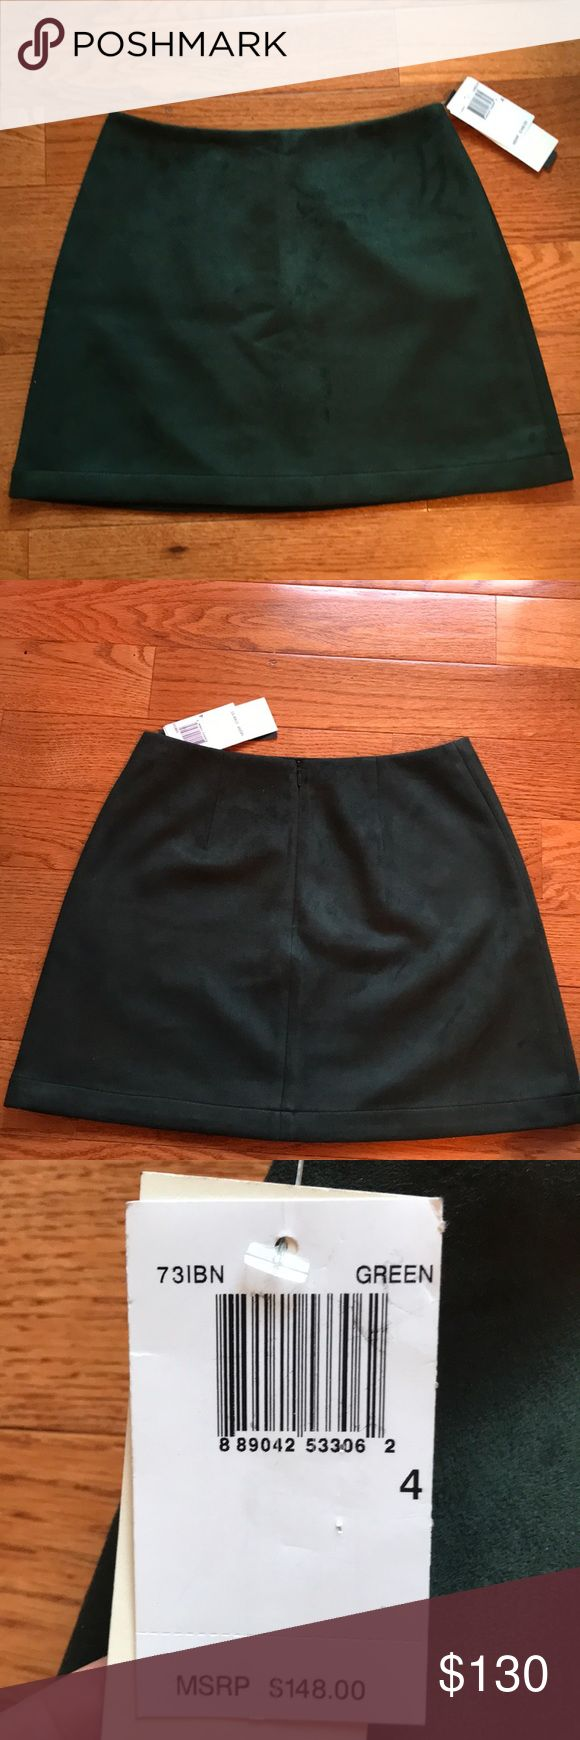 NWT‼️‼️Size 4 Green skirt French connection NWT‼️Size 4 emerald green French connection skirt from Bloomingdales French Connection Skirts Mini